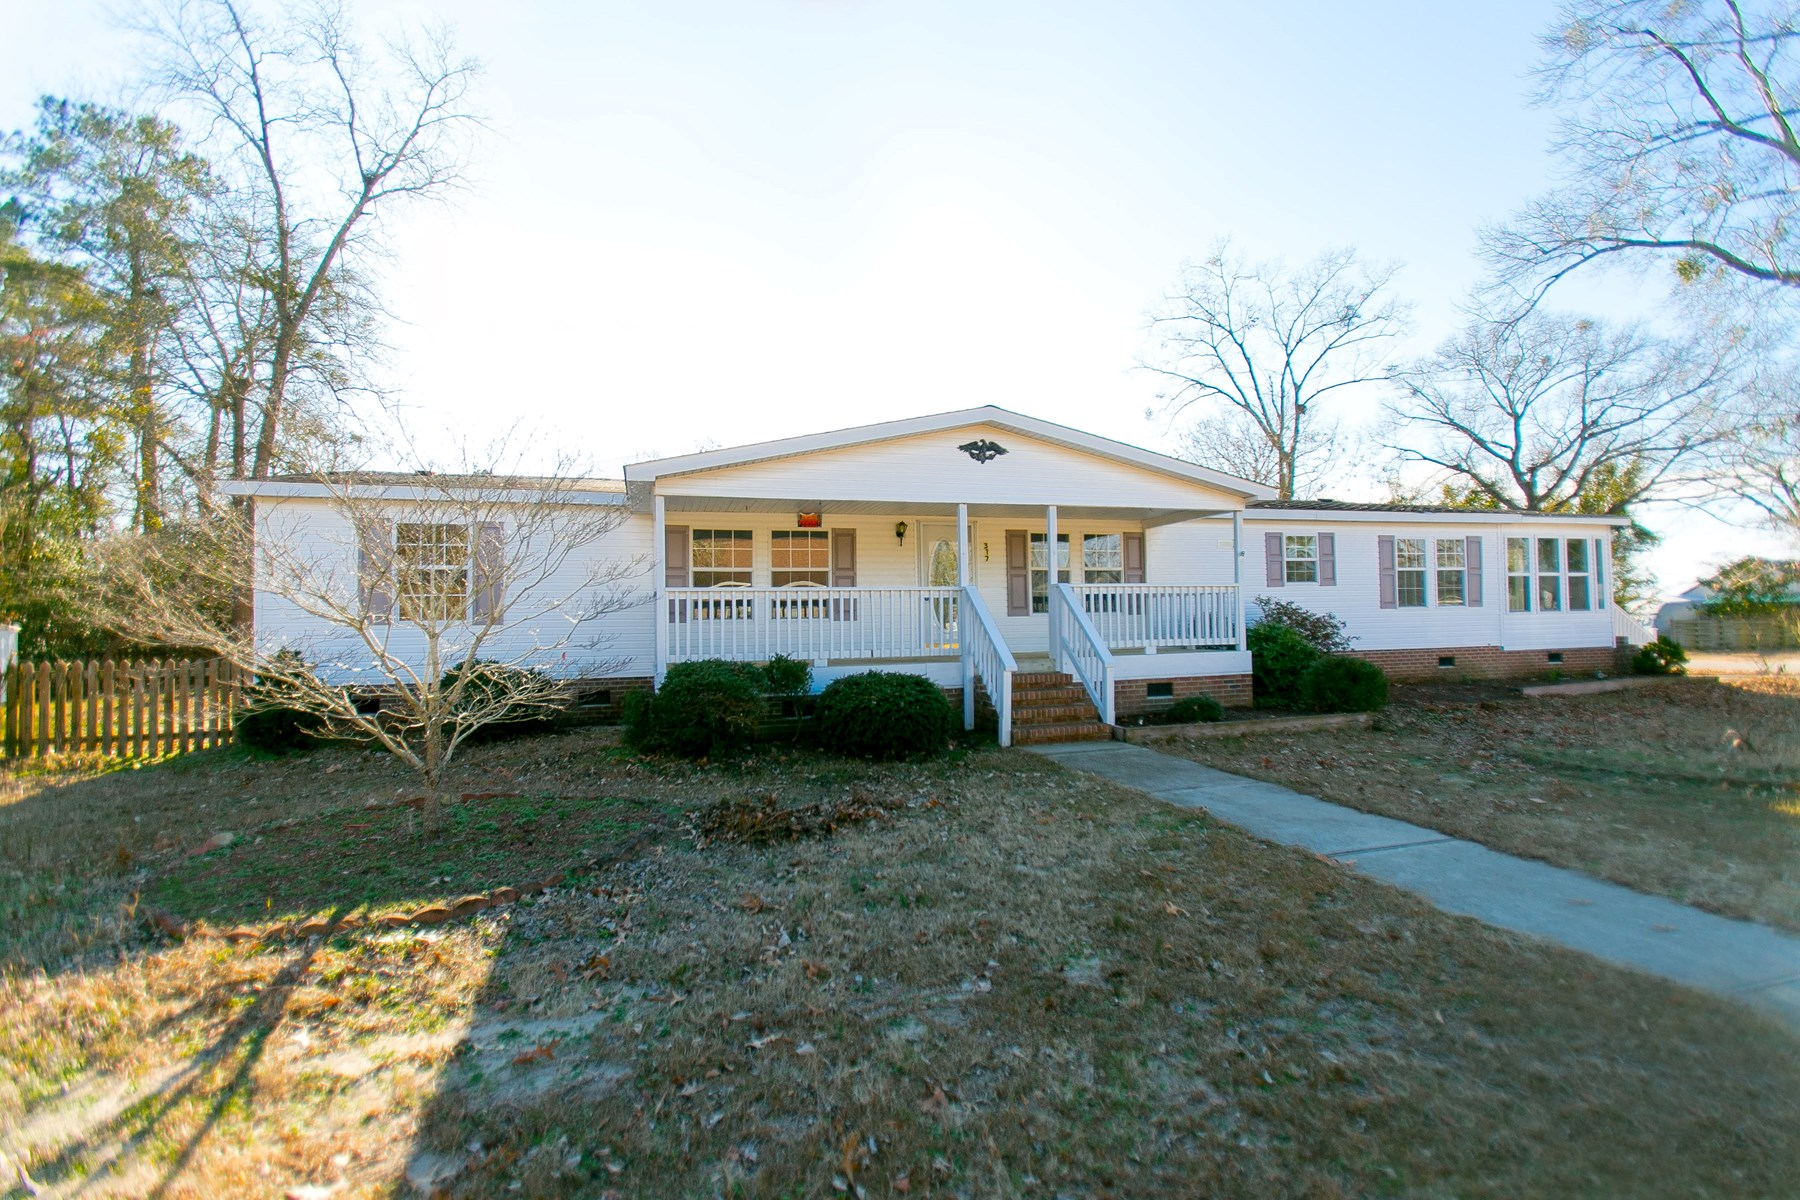 CHOWAN COUNTY WATER ACCESS HOME-RECENTLY REMODELED